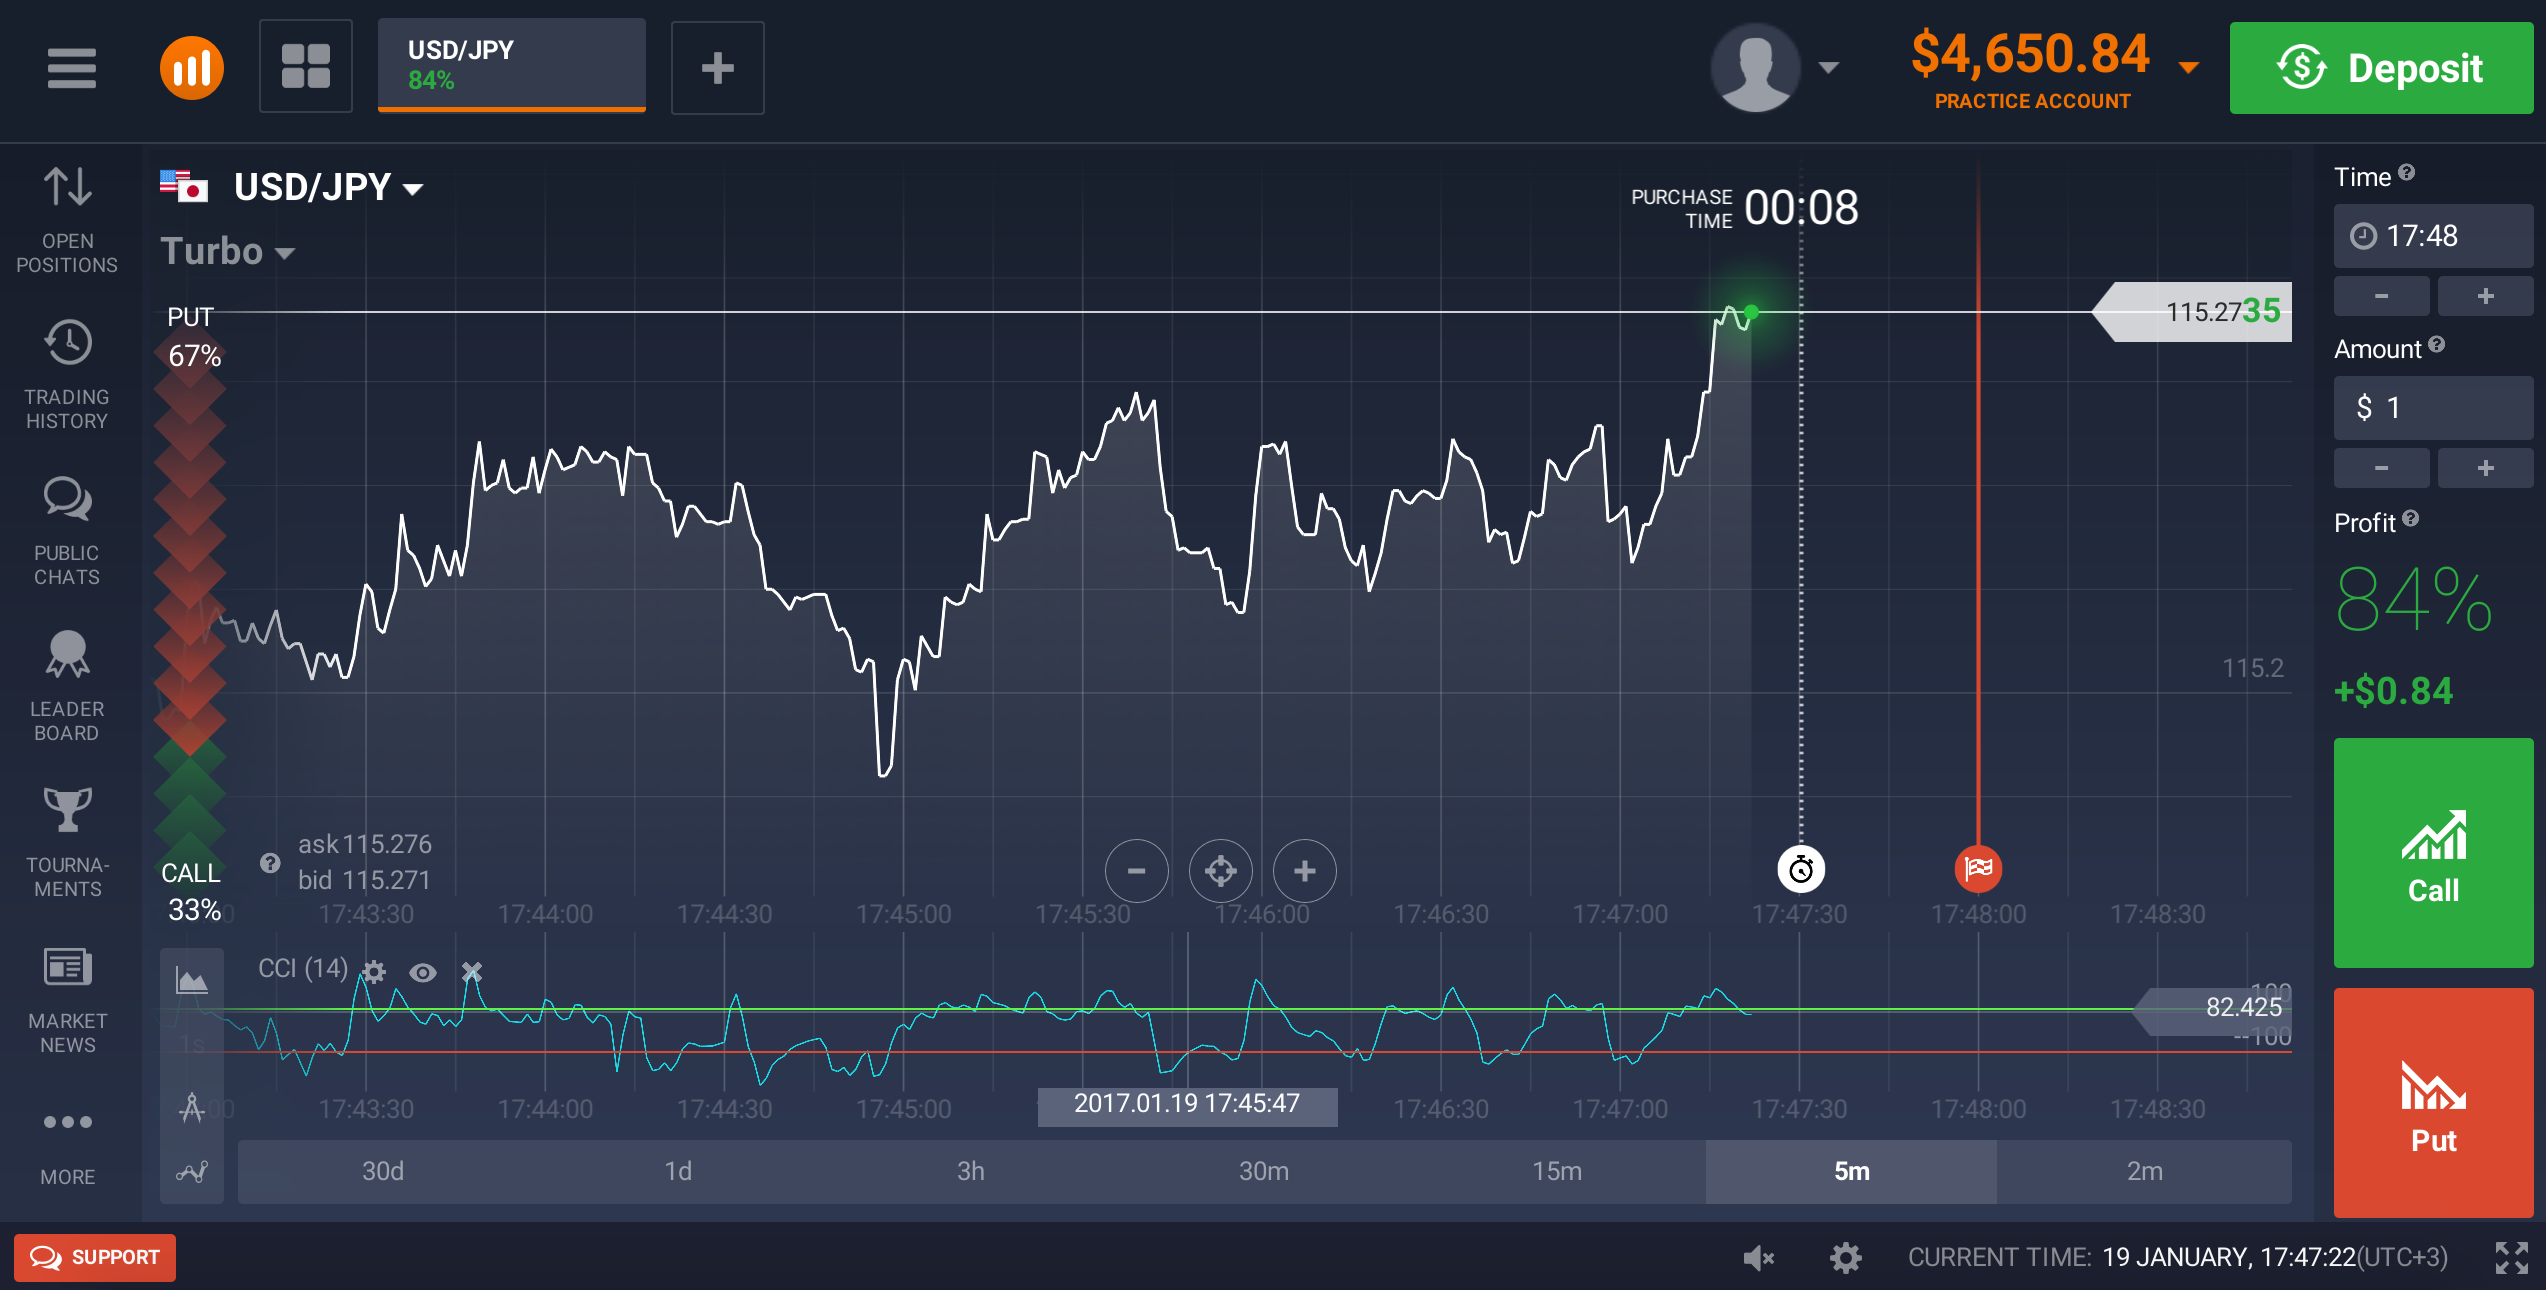 Livro how to trade binary options successfully